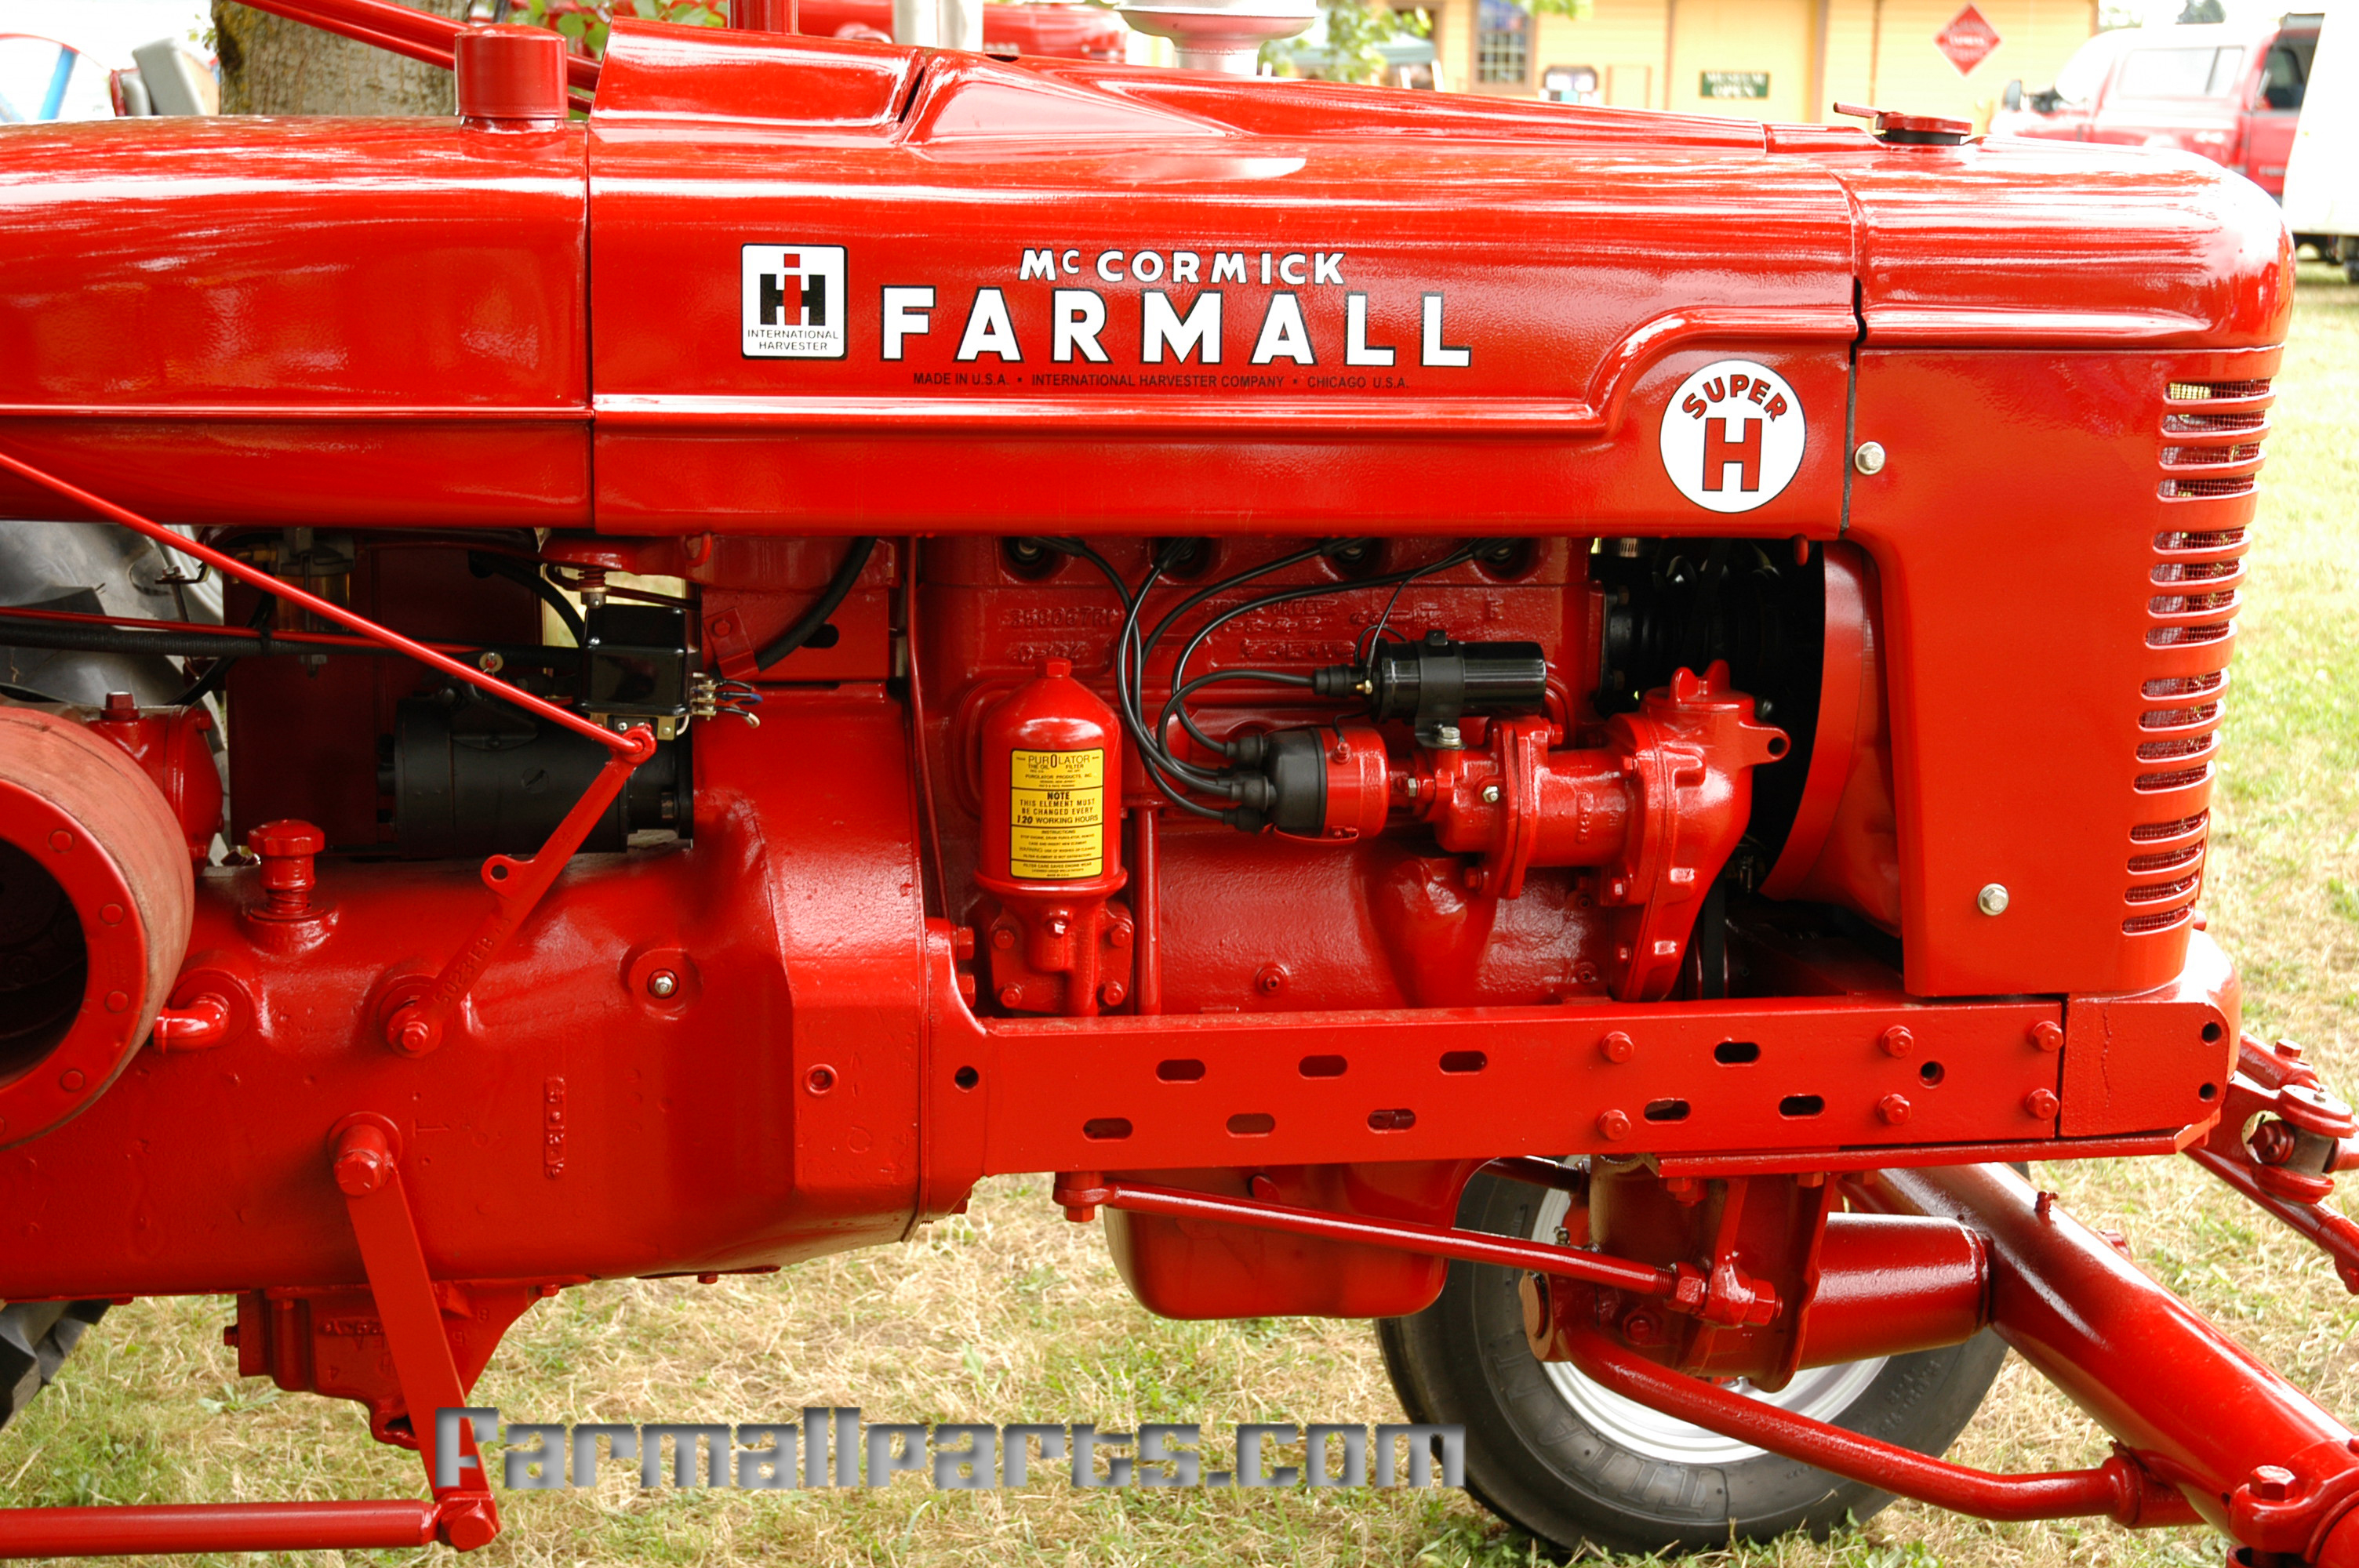 Farmall Parts - International Harvester Farmall Tractor Parts - IH